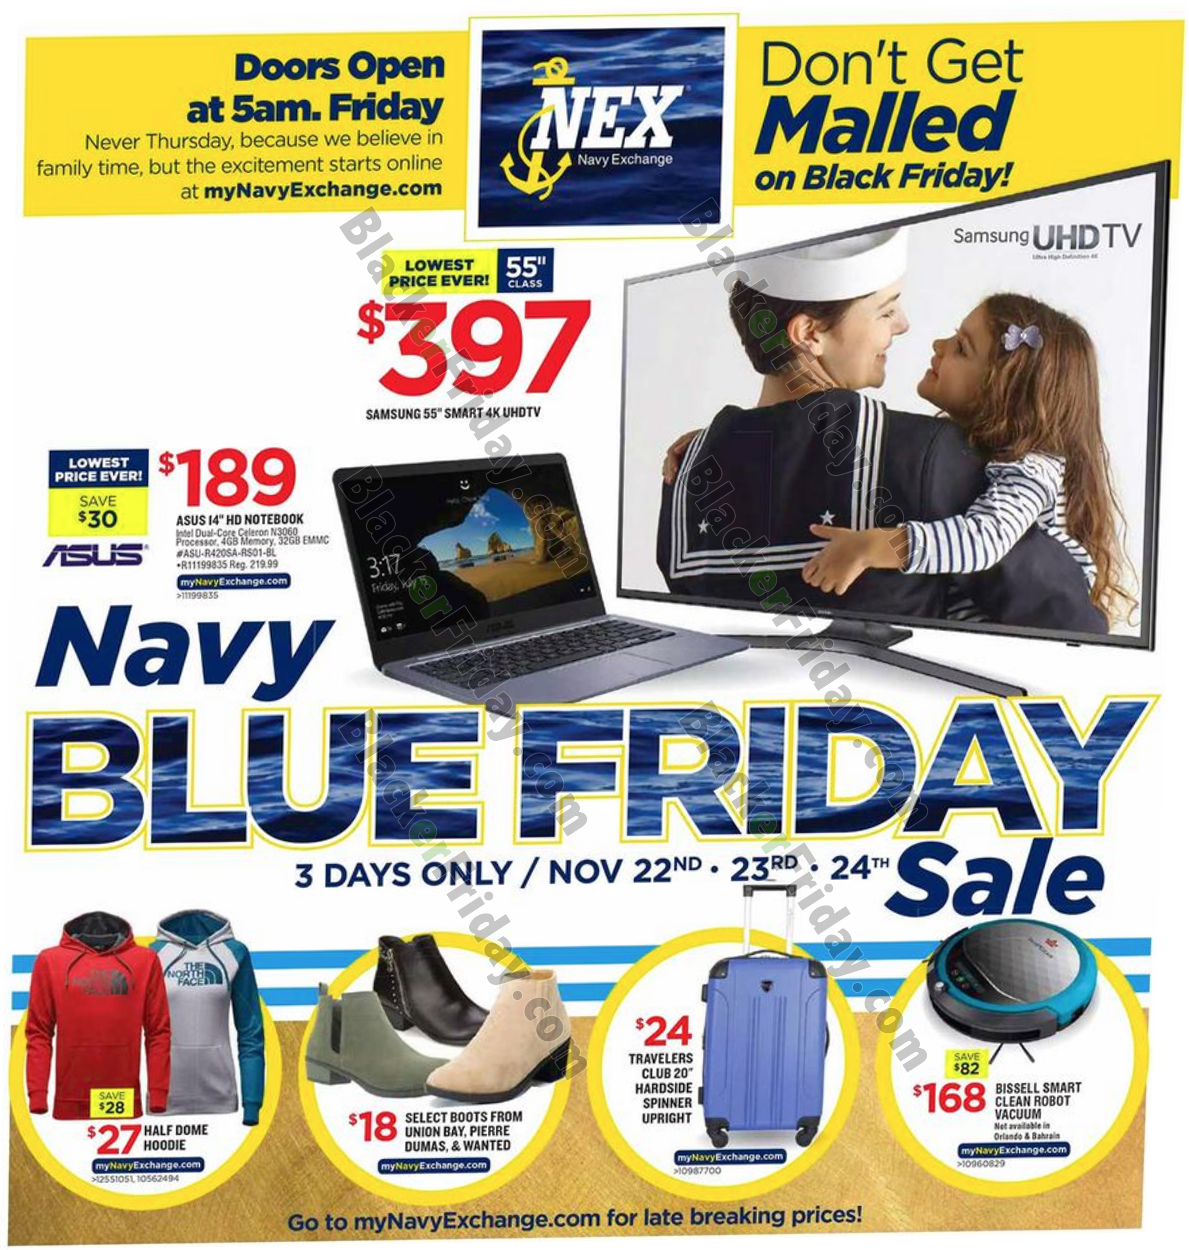 Navy Exchange Black Friday 2019 Ad & Sale Detials - BlackerFriday com